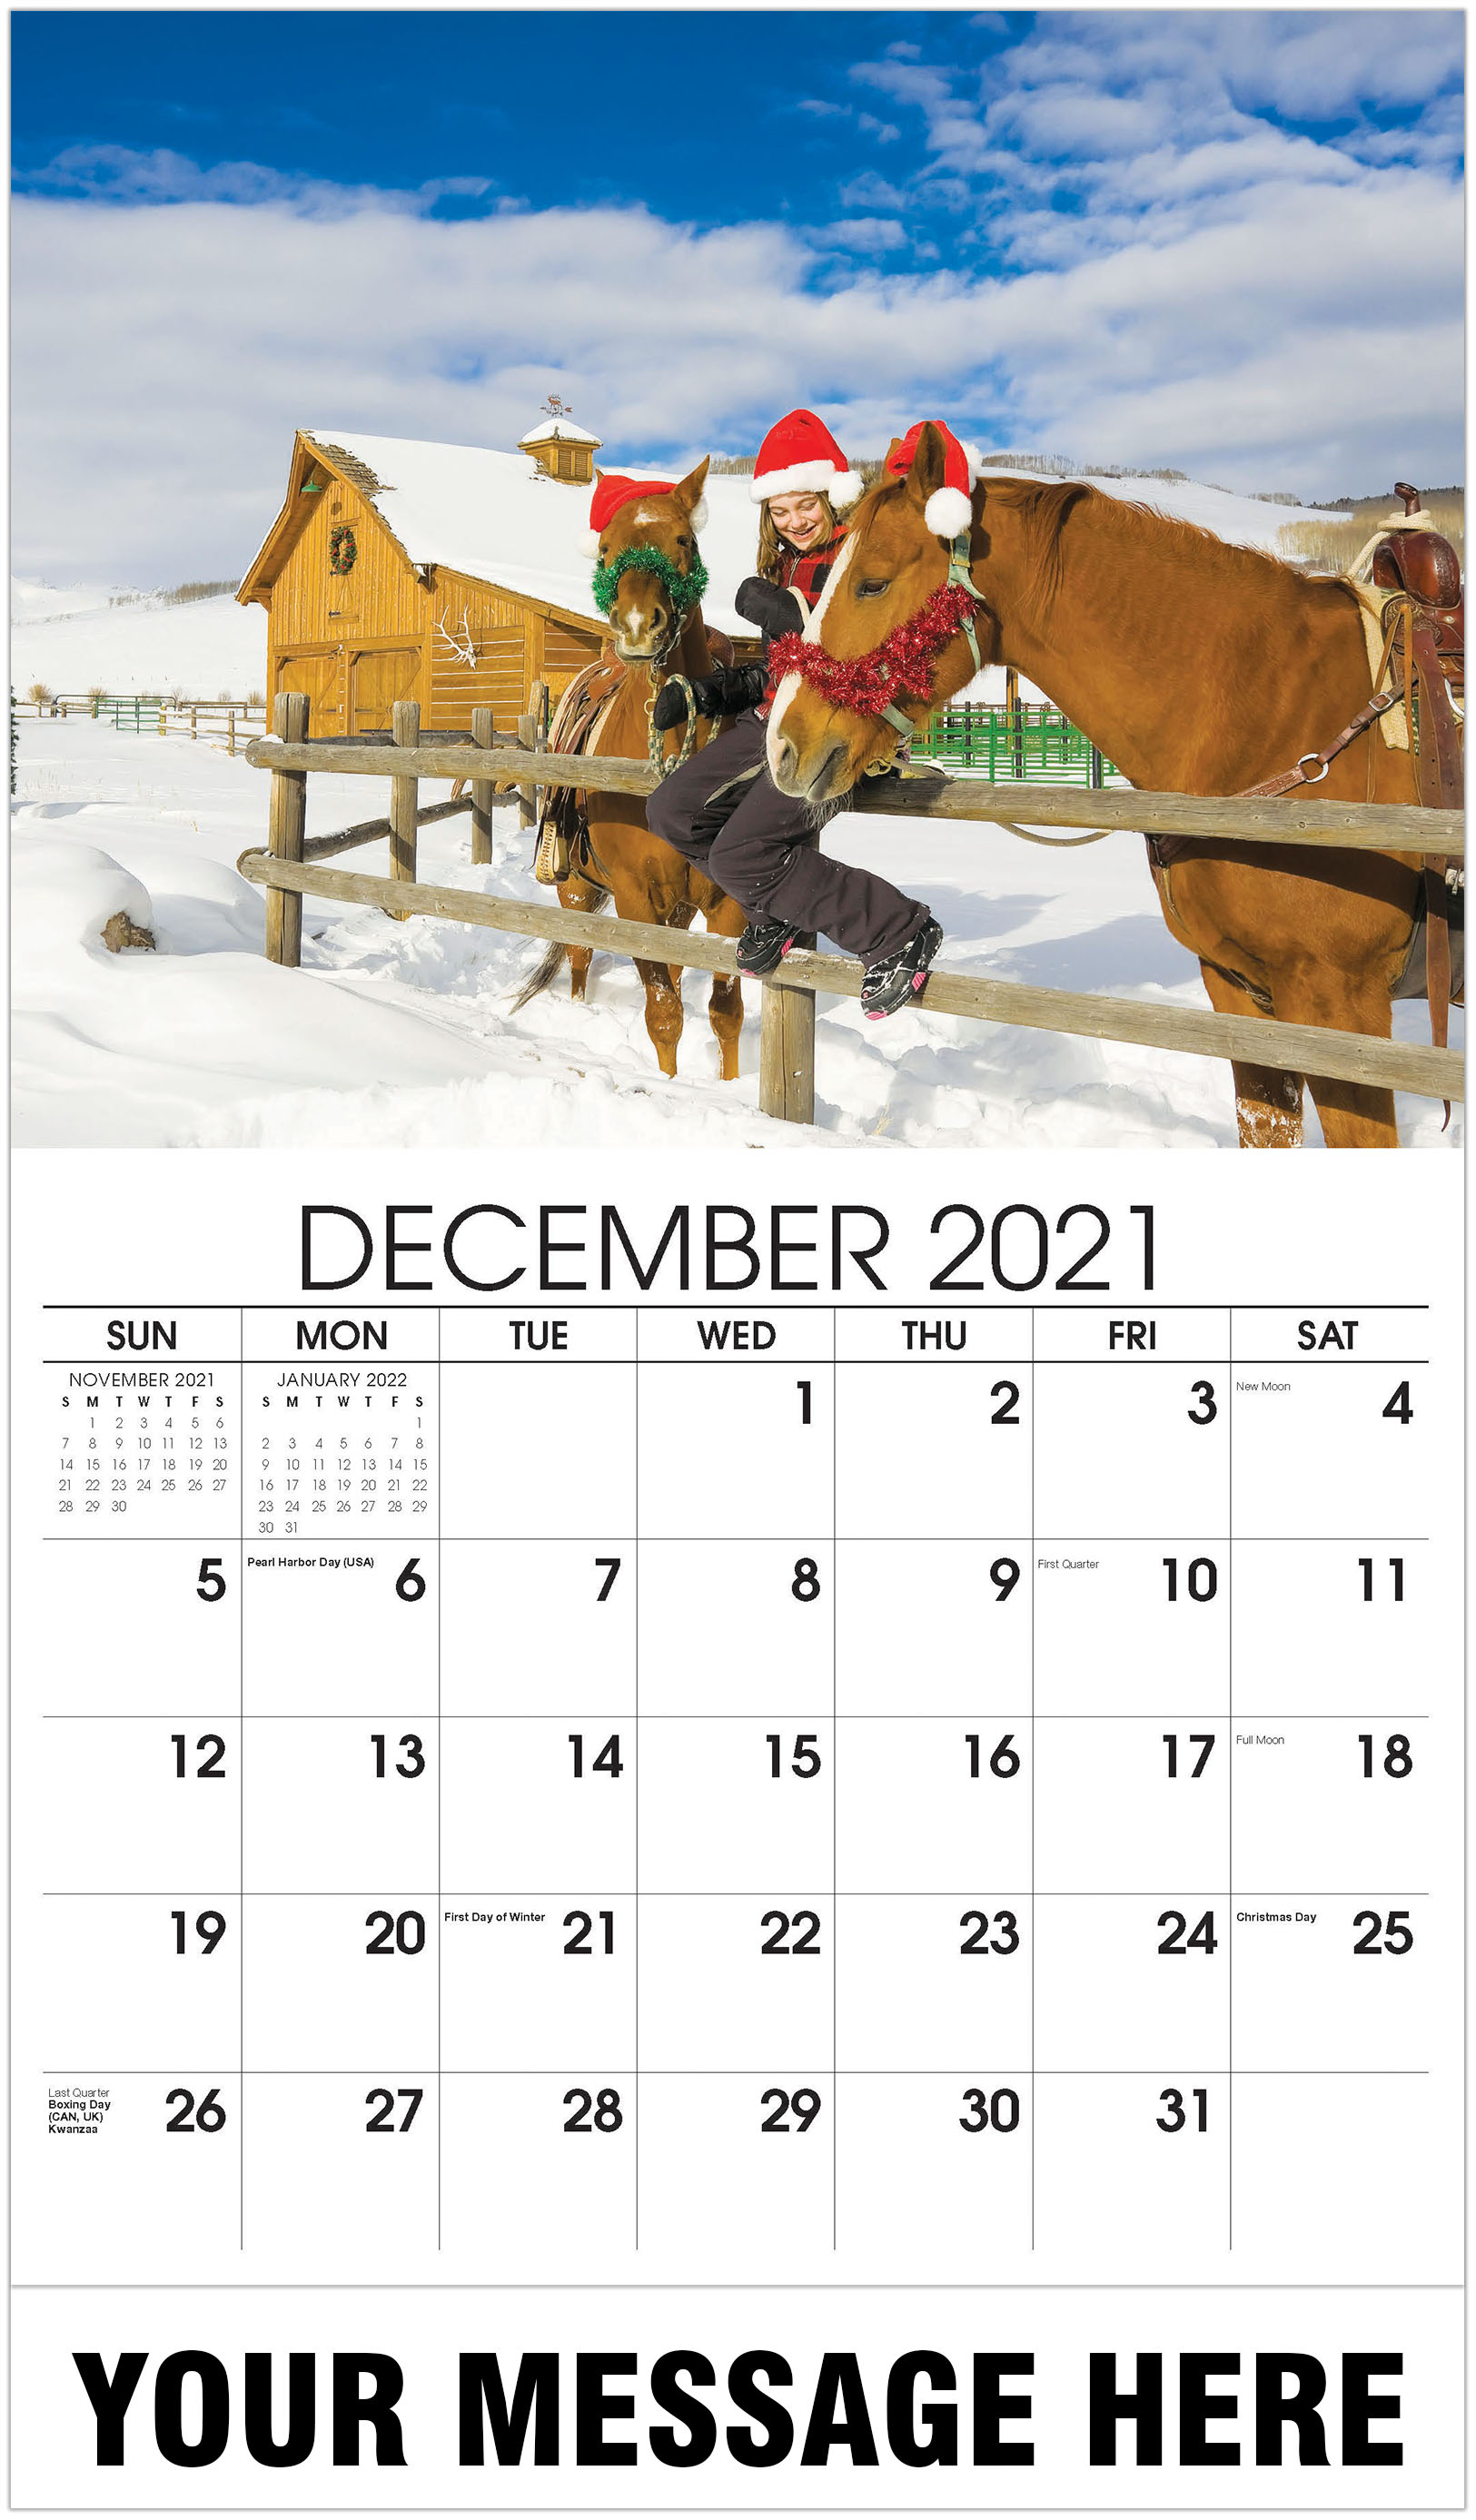 Christmas girl with horses - December 2021 - Country Spirit 2021 Promotional Calendar